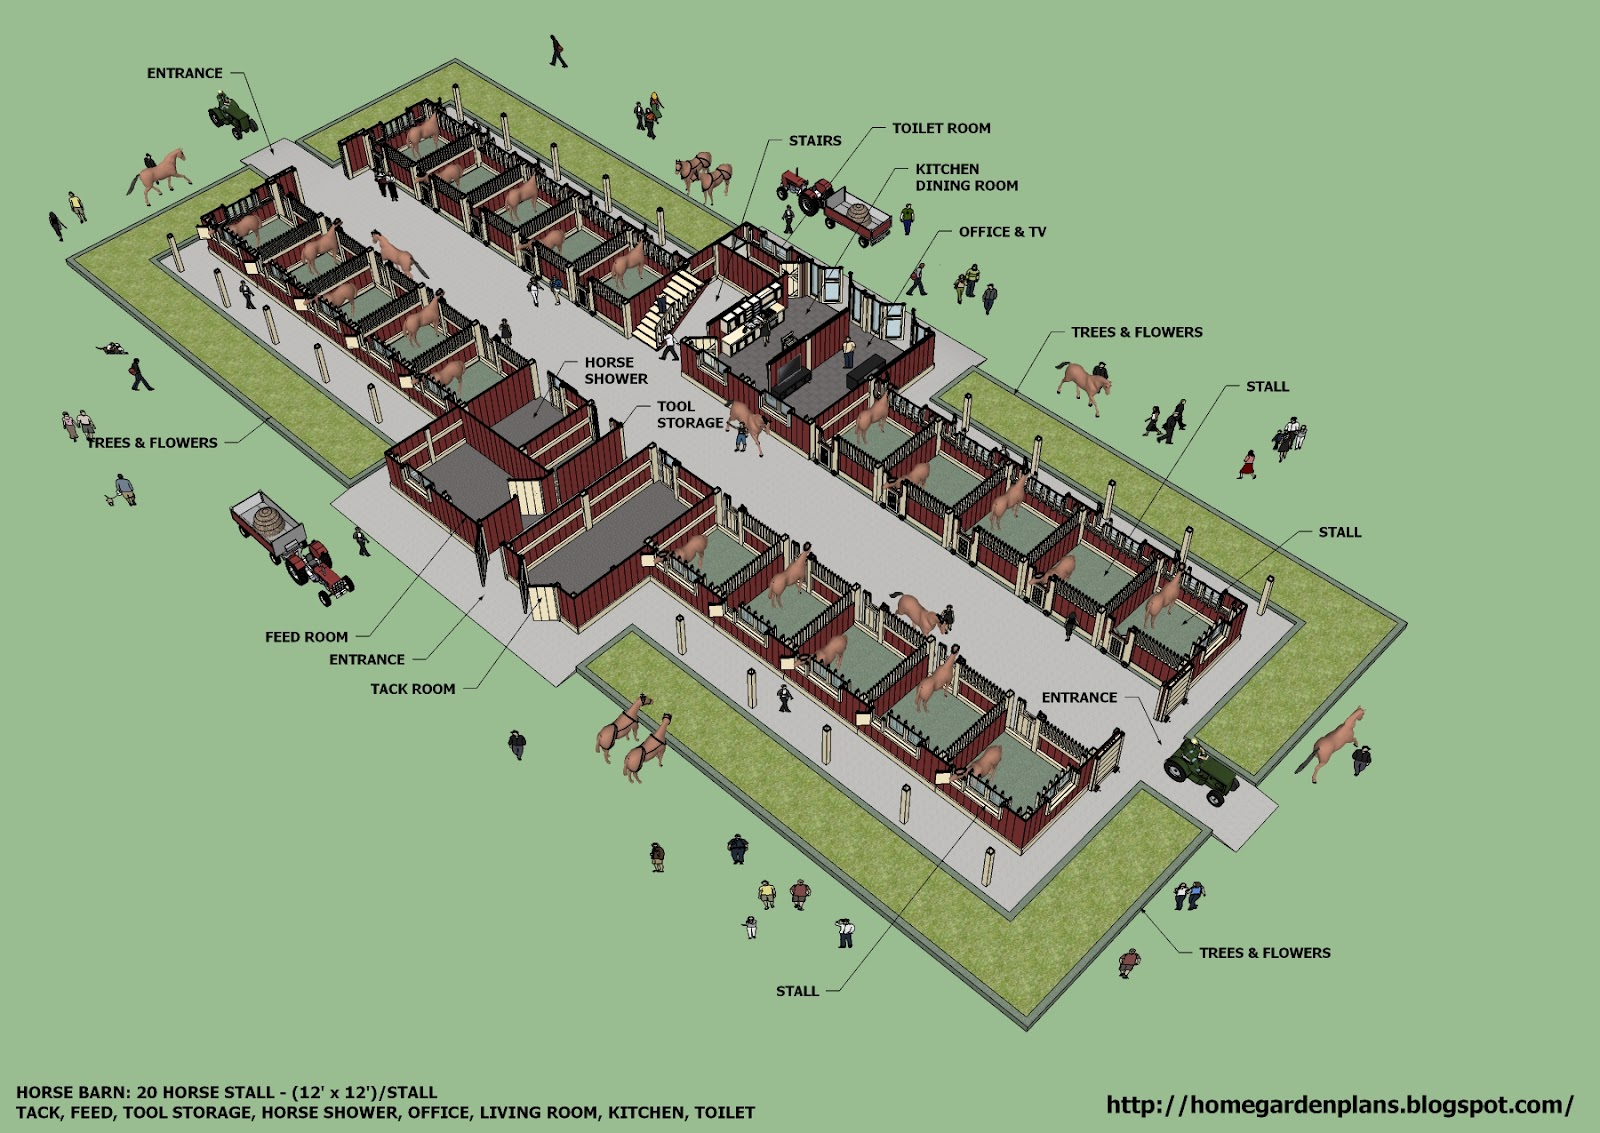 Home Garden Plans B20H Large Horse Barn For 20